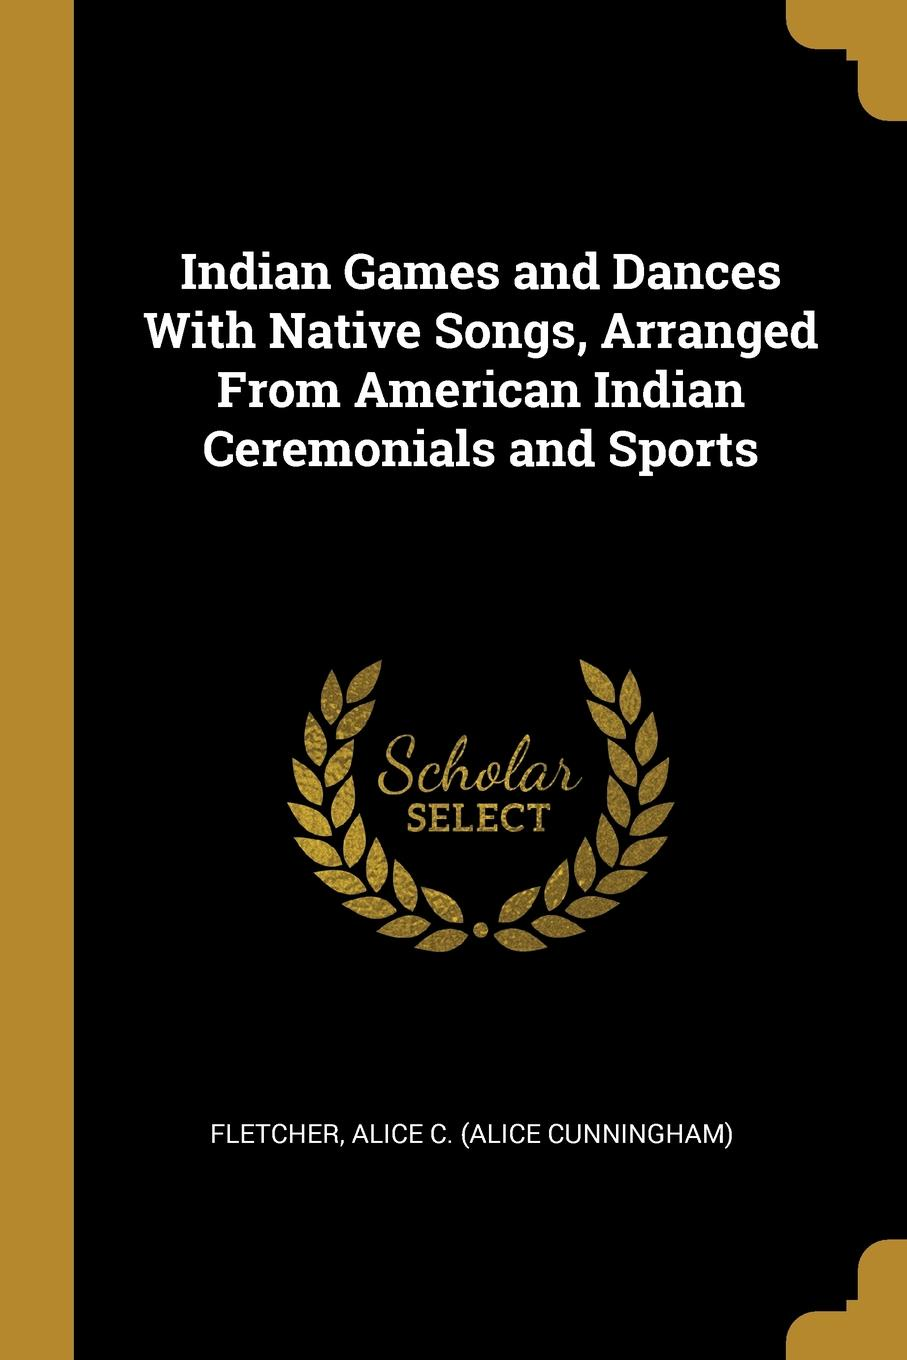 Fletcher Alice C. (Alice Cunningham). Indian Games and Dances With Native Songs, Arranged From American Indian Ceremonials and Sports